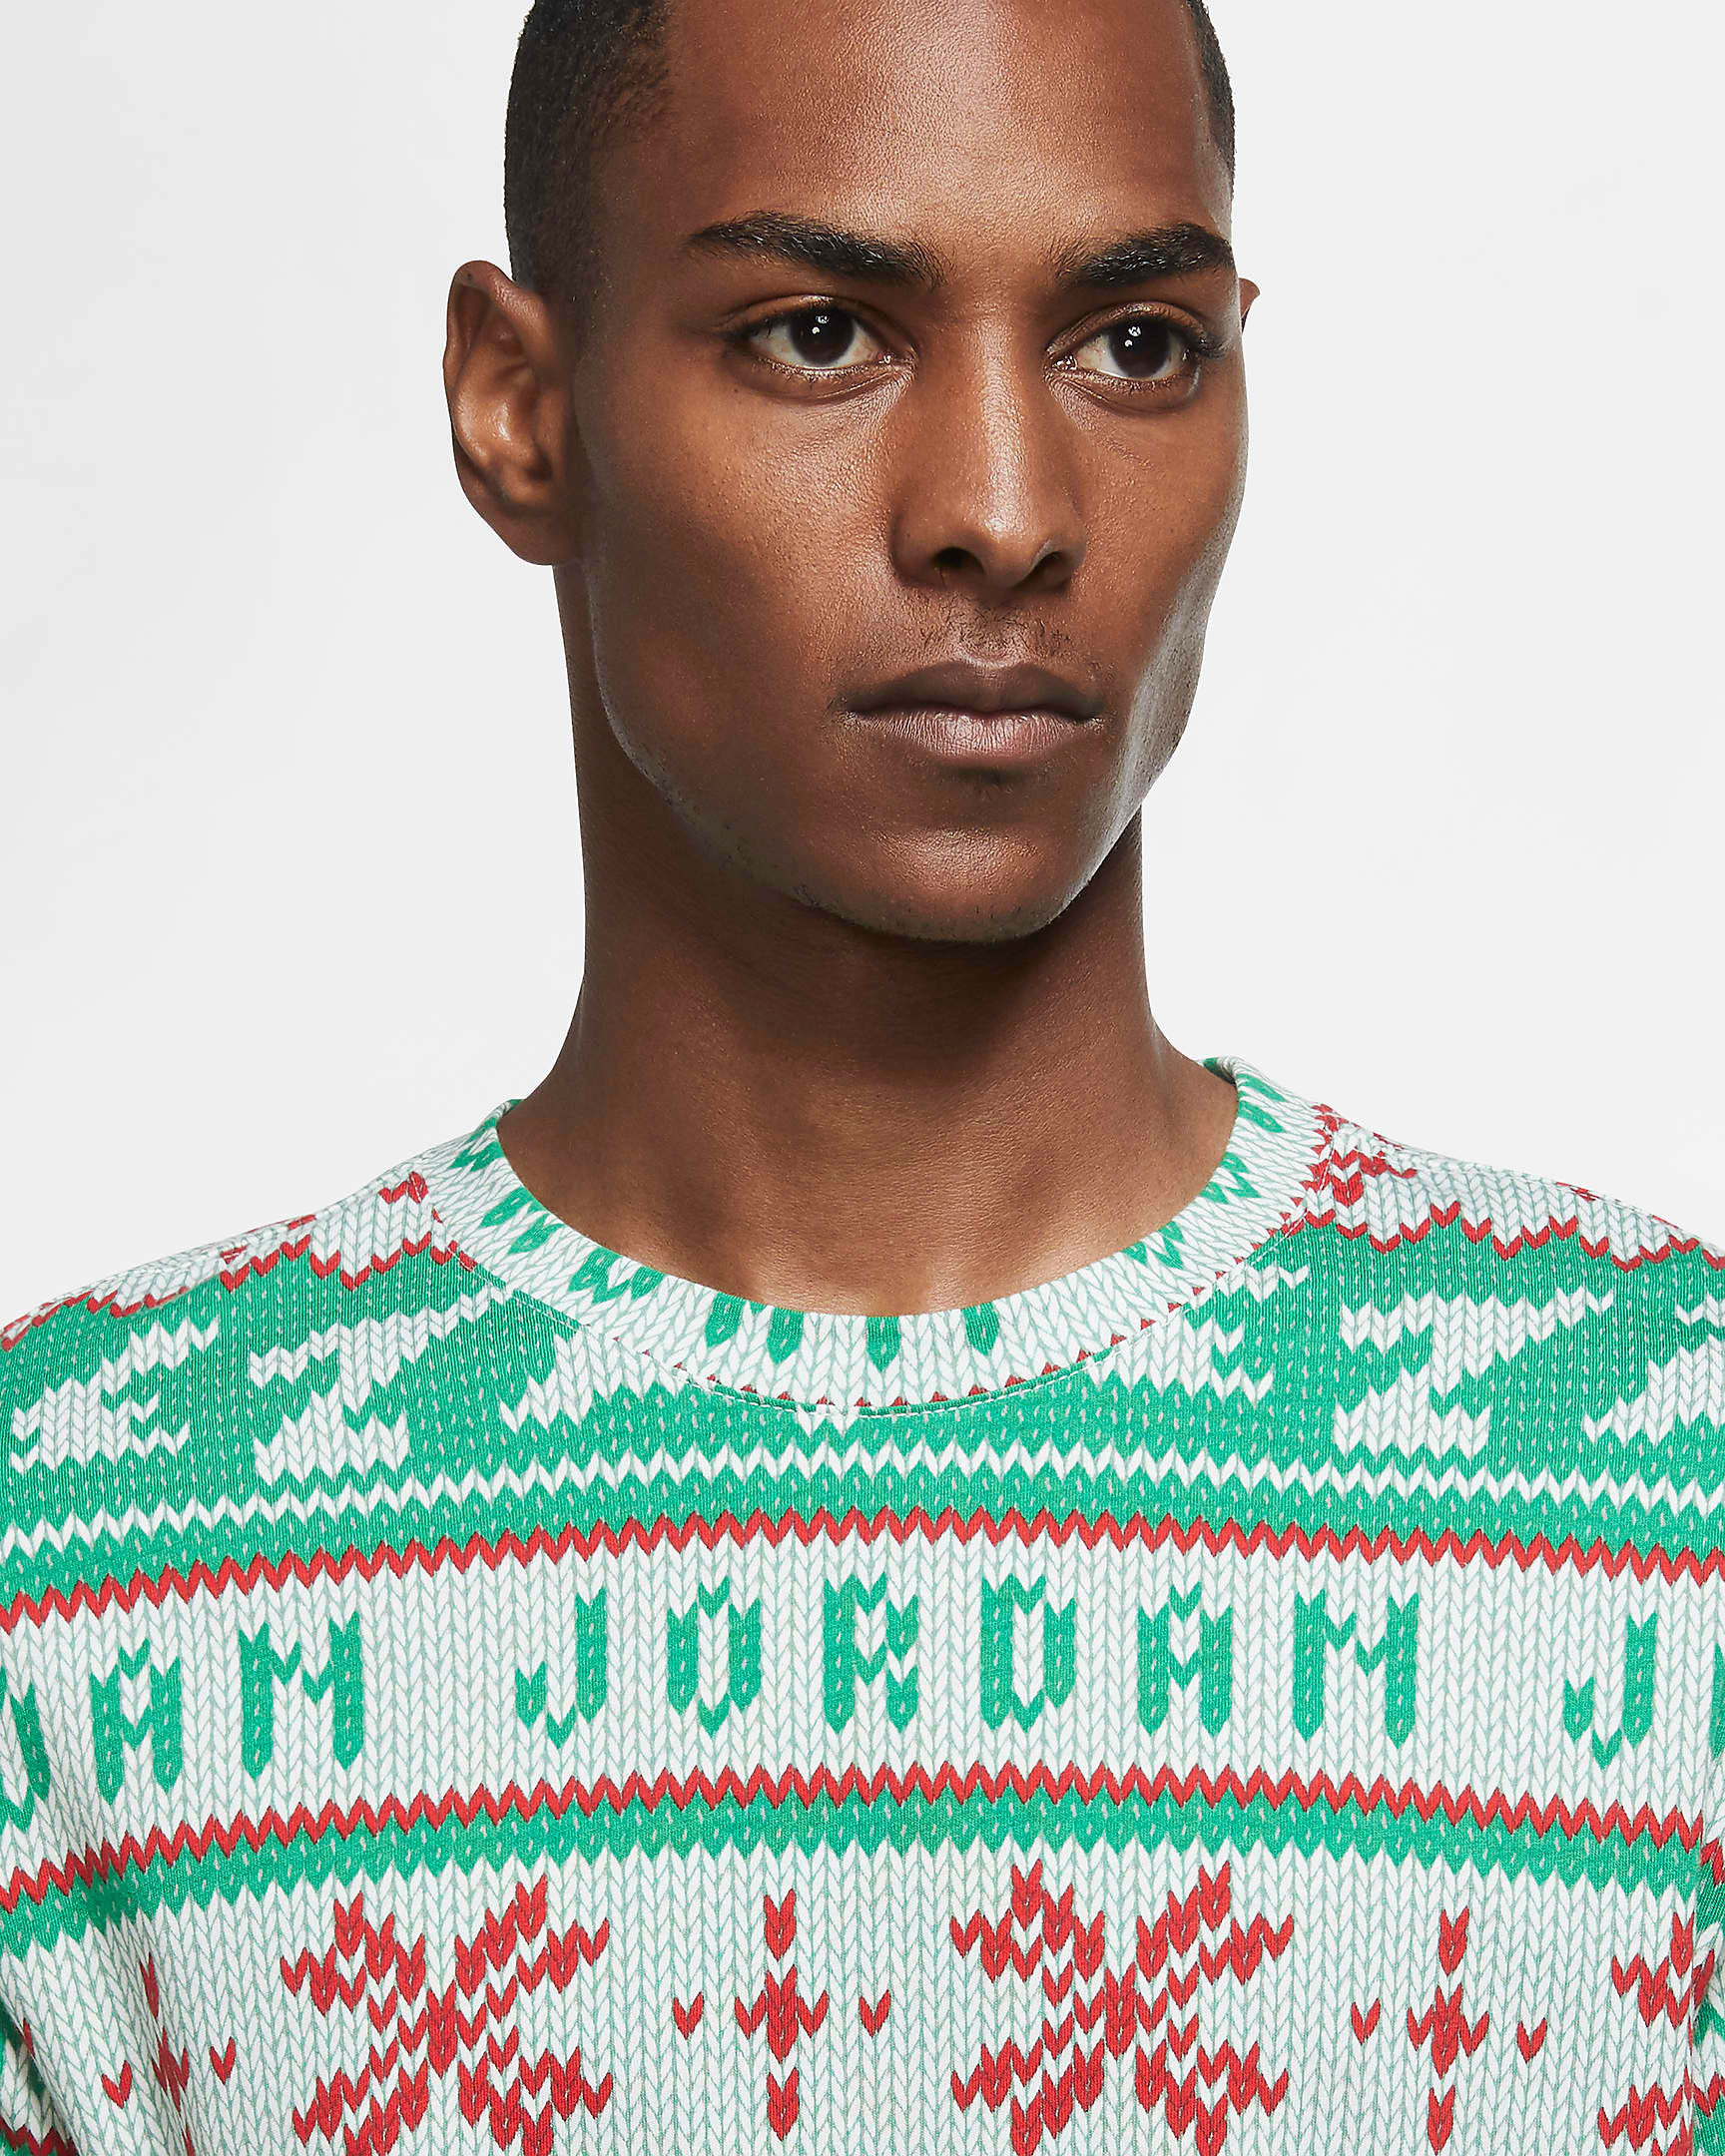 jordan-holiday-ugly-sweater-shirt-green-red-white-3